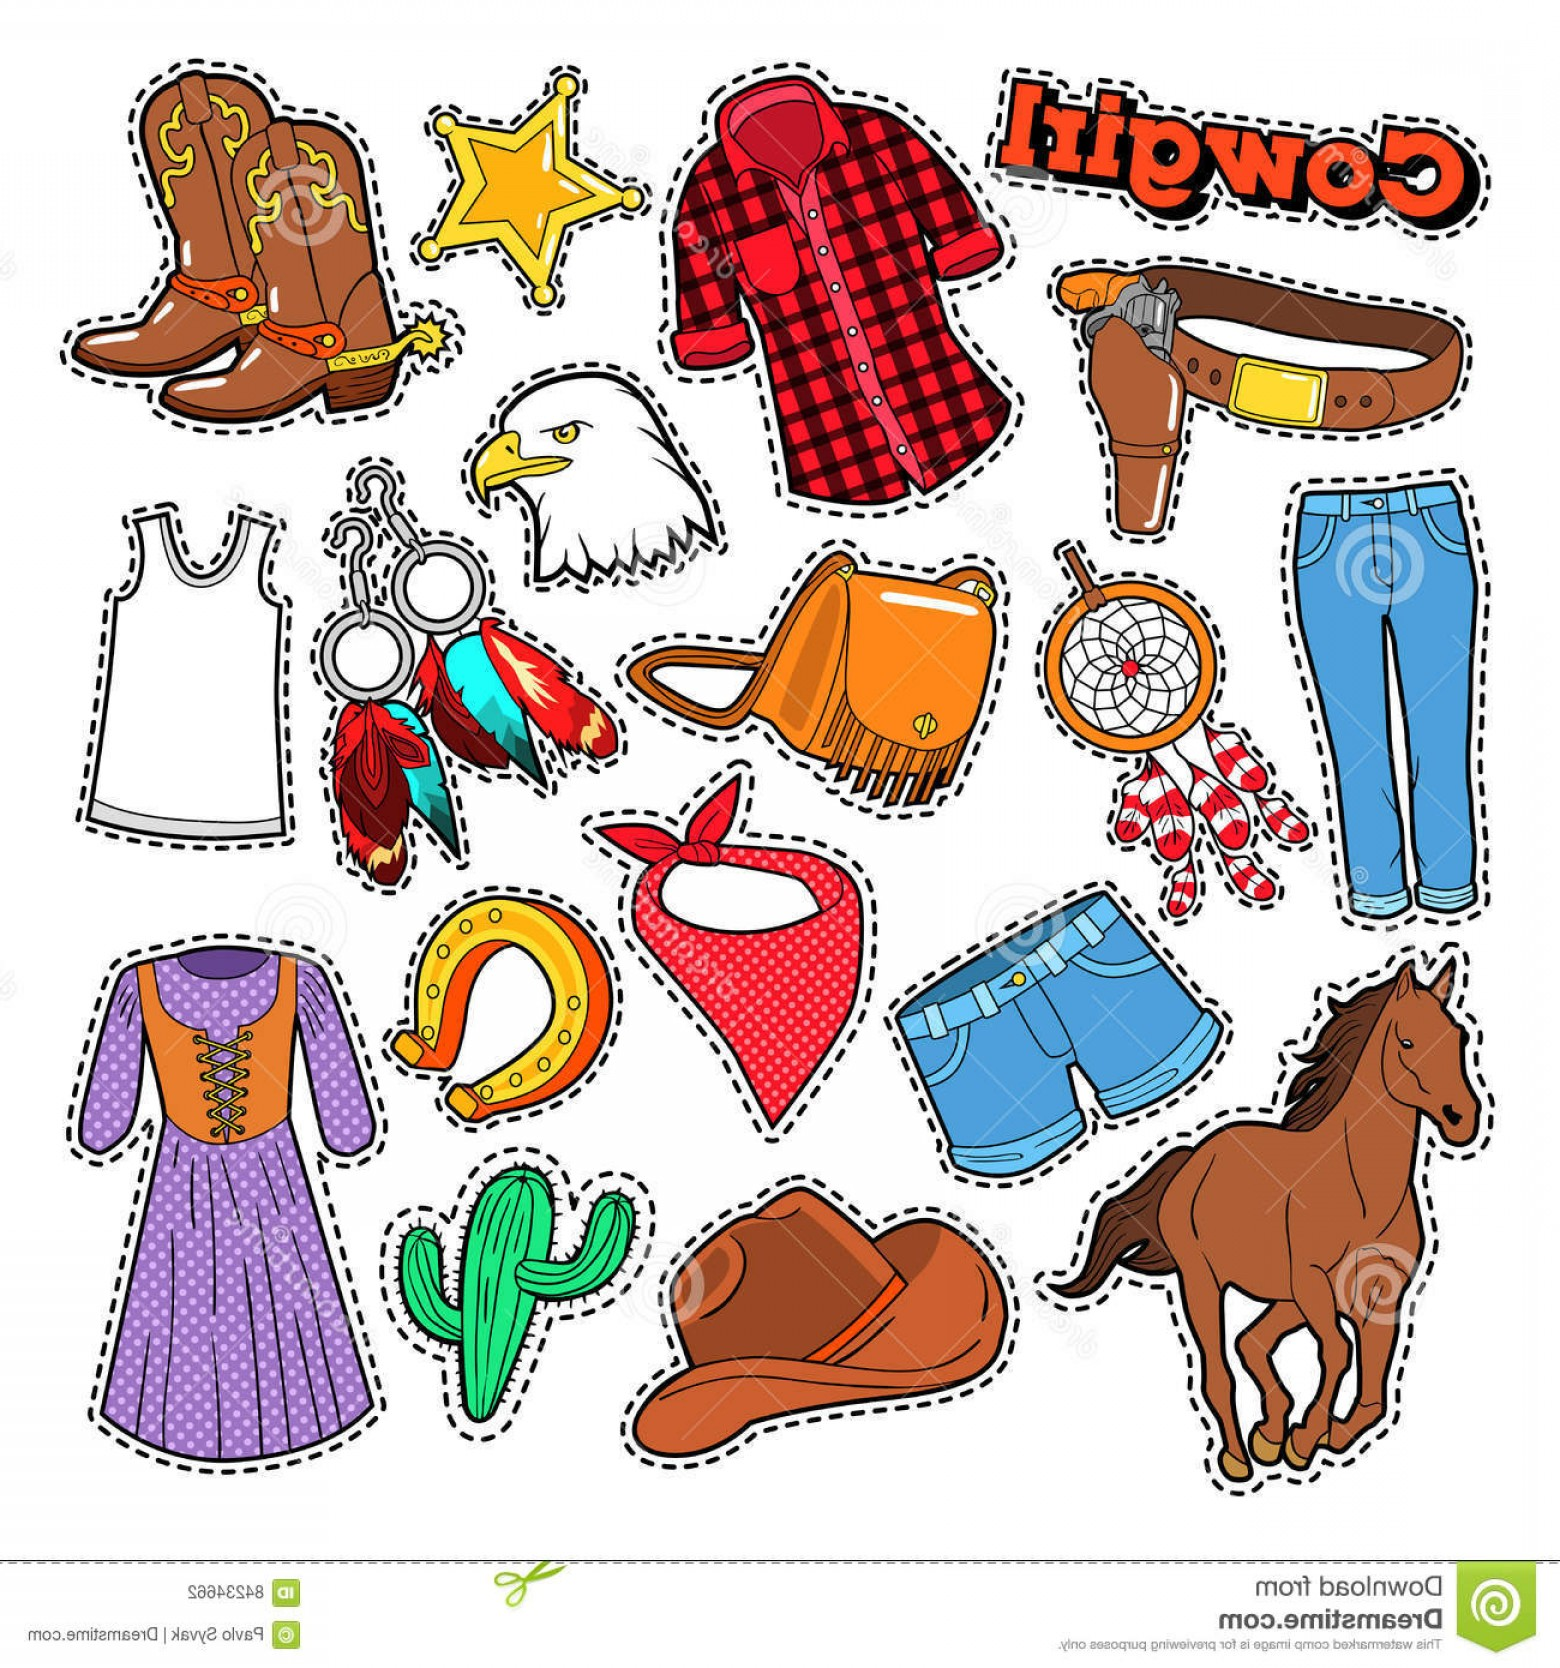 Spurs Clip Art Vector: Stock Illustration Cowgirl Doodle Scrapbook Stickers Patches Badges Horse Spurs Vector Illustration Image